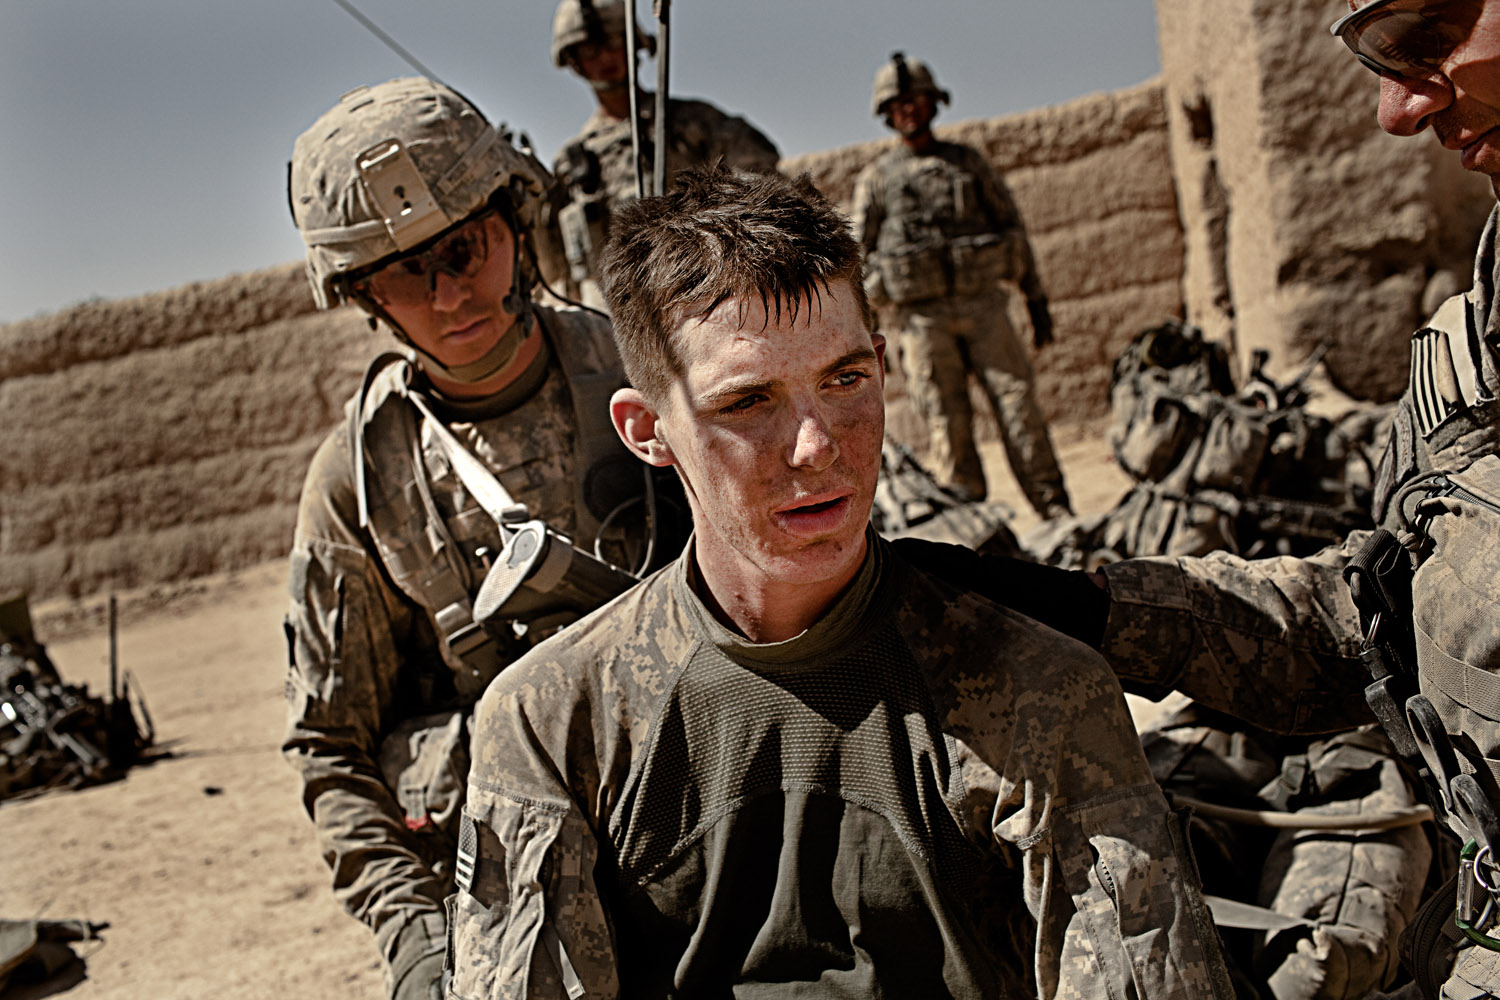 Private First Class Matthew Sharpe, 19, receives medical treatment from fellow soldiers after two IED attacks in Kandahar Province, Afghanistan. Oct. 9, 2010.